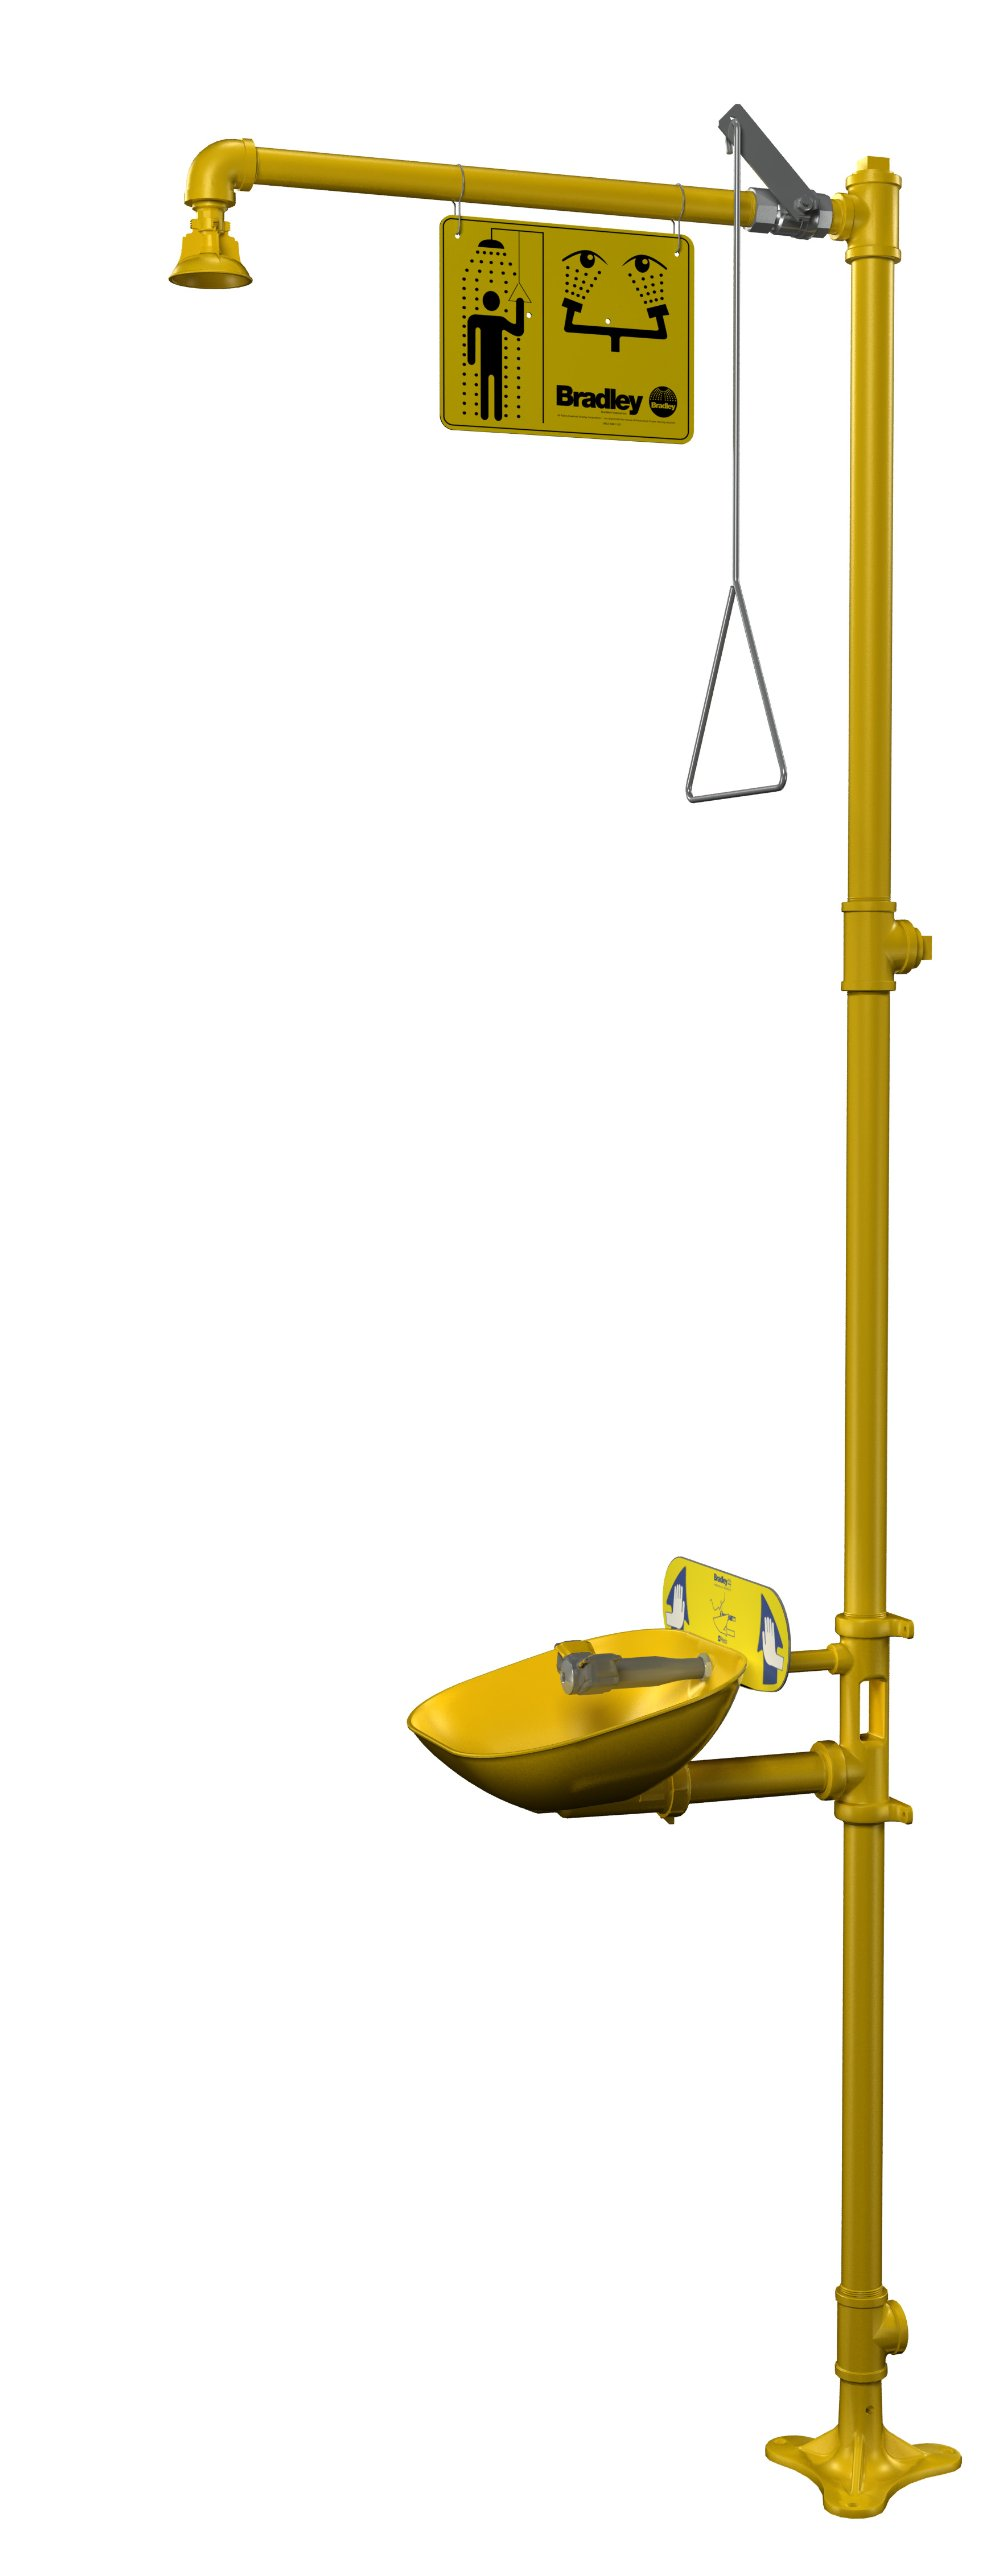 Bradley S19314EW Galvanized Steel 3 Spray Head Halo Combination Drench Showers and Eye Wash Unit with Plastic Showerhead and Bowl, 20 GPM, 18-1/2'' Width x 94-1/8'' Height x 26-13/16'' Depth, Yellow